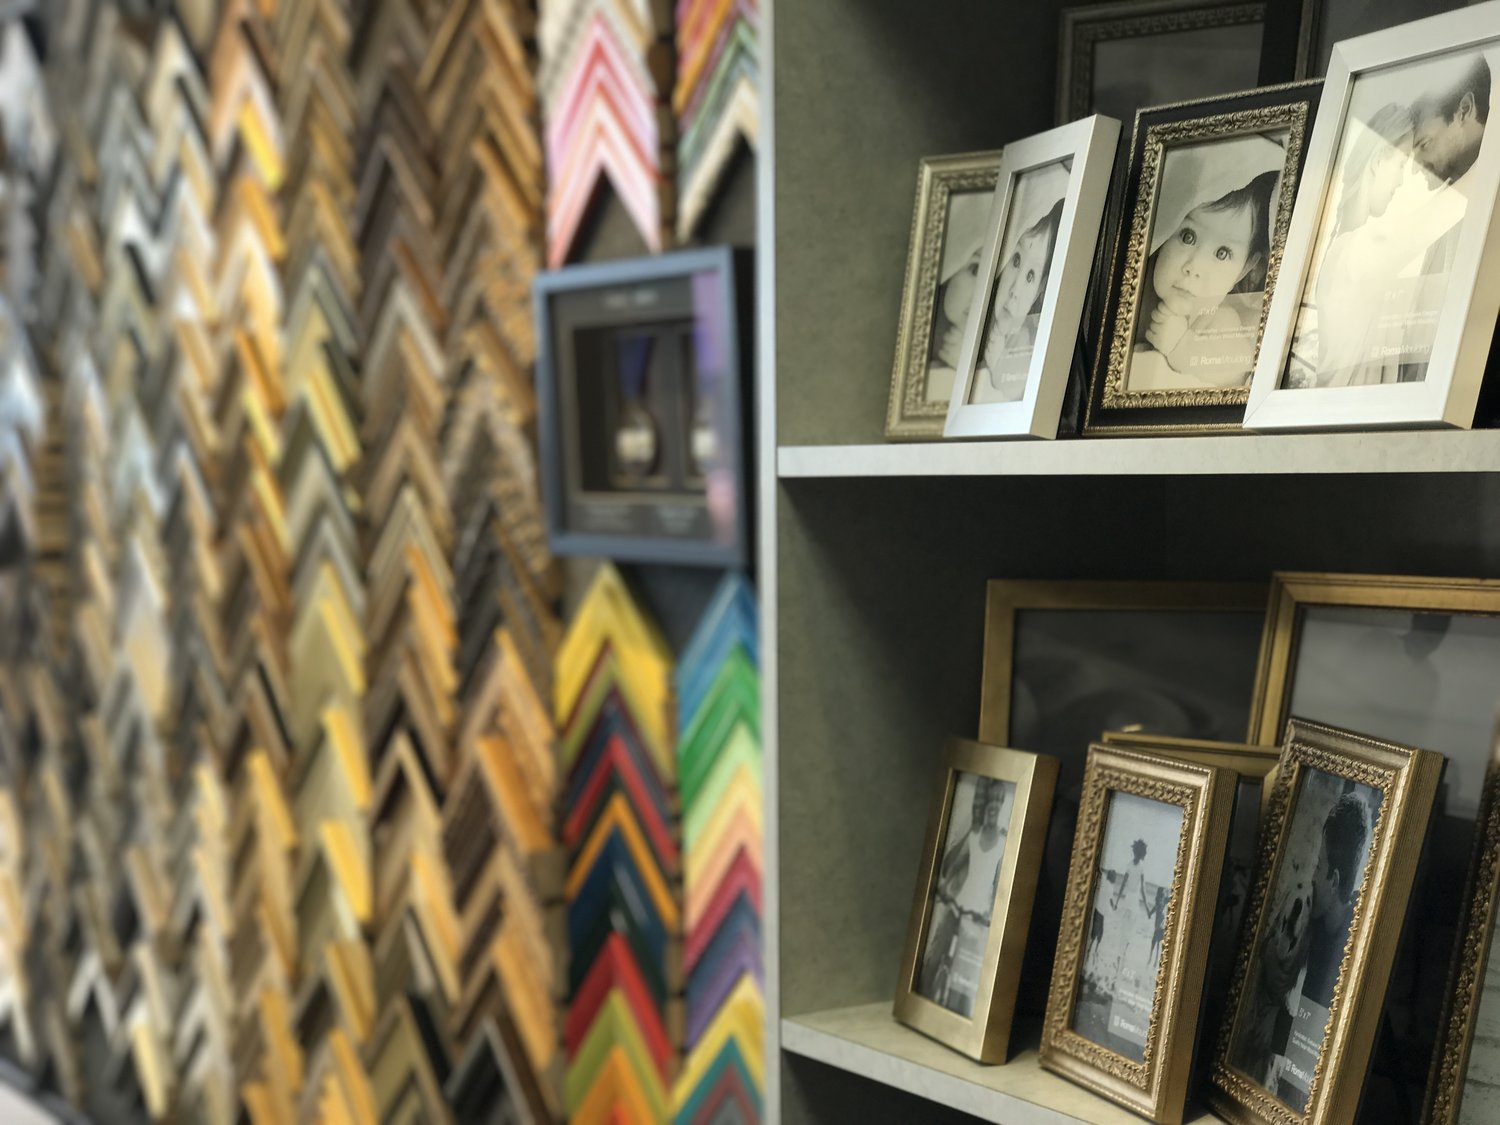 WHY DO I NEED A FRAME? — Picture Framing @ Fastframe of Santa Monica